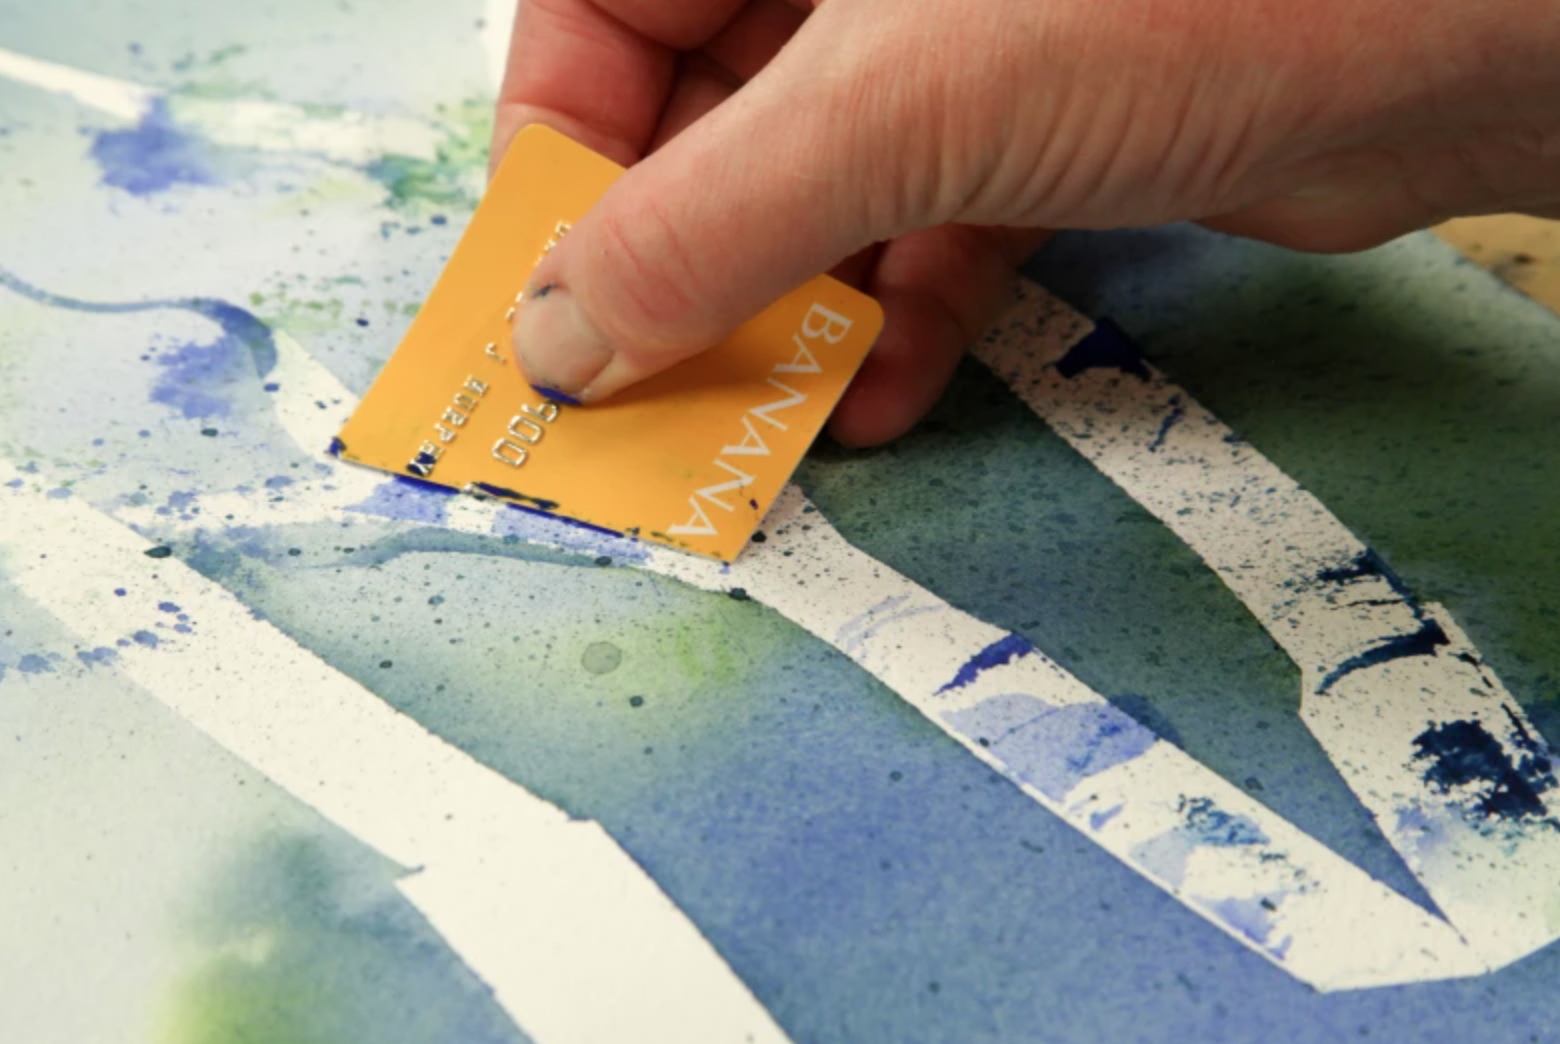 scraping watercolor with credit card